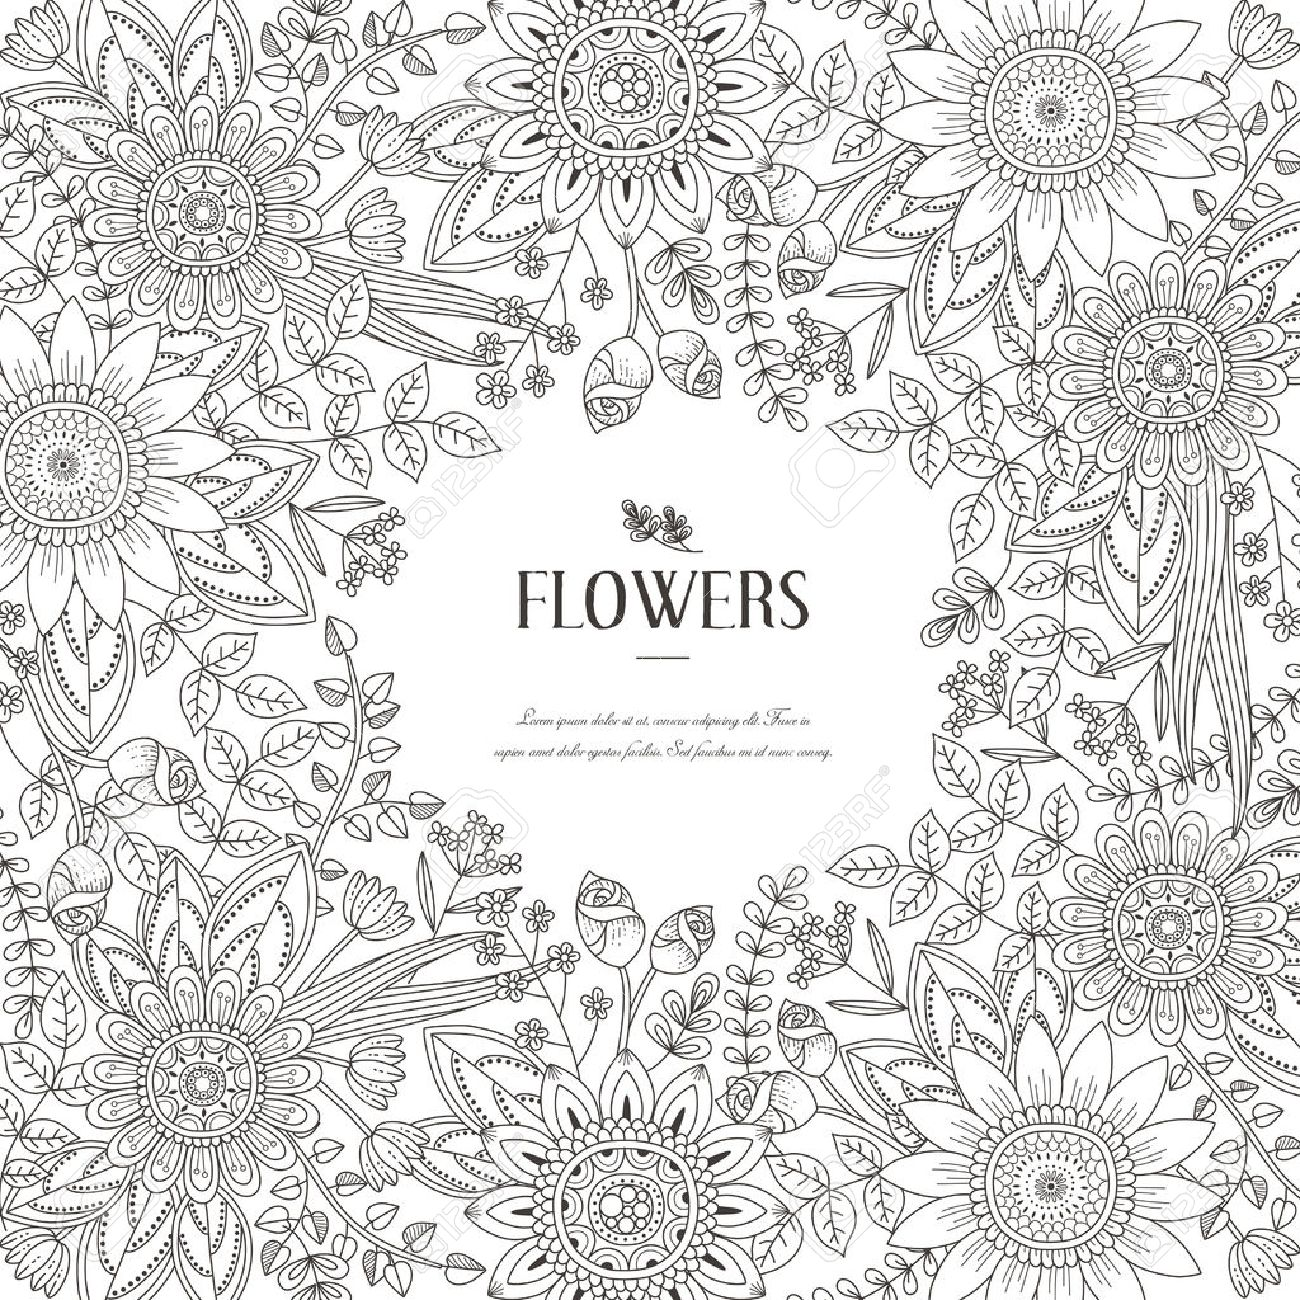 Splendid Flower Frame Coloring Page In Exquisite Style Stock Vector